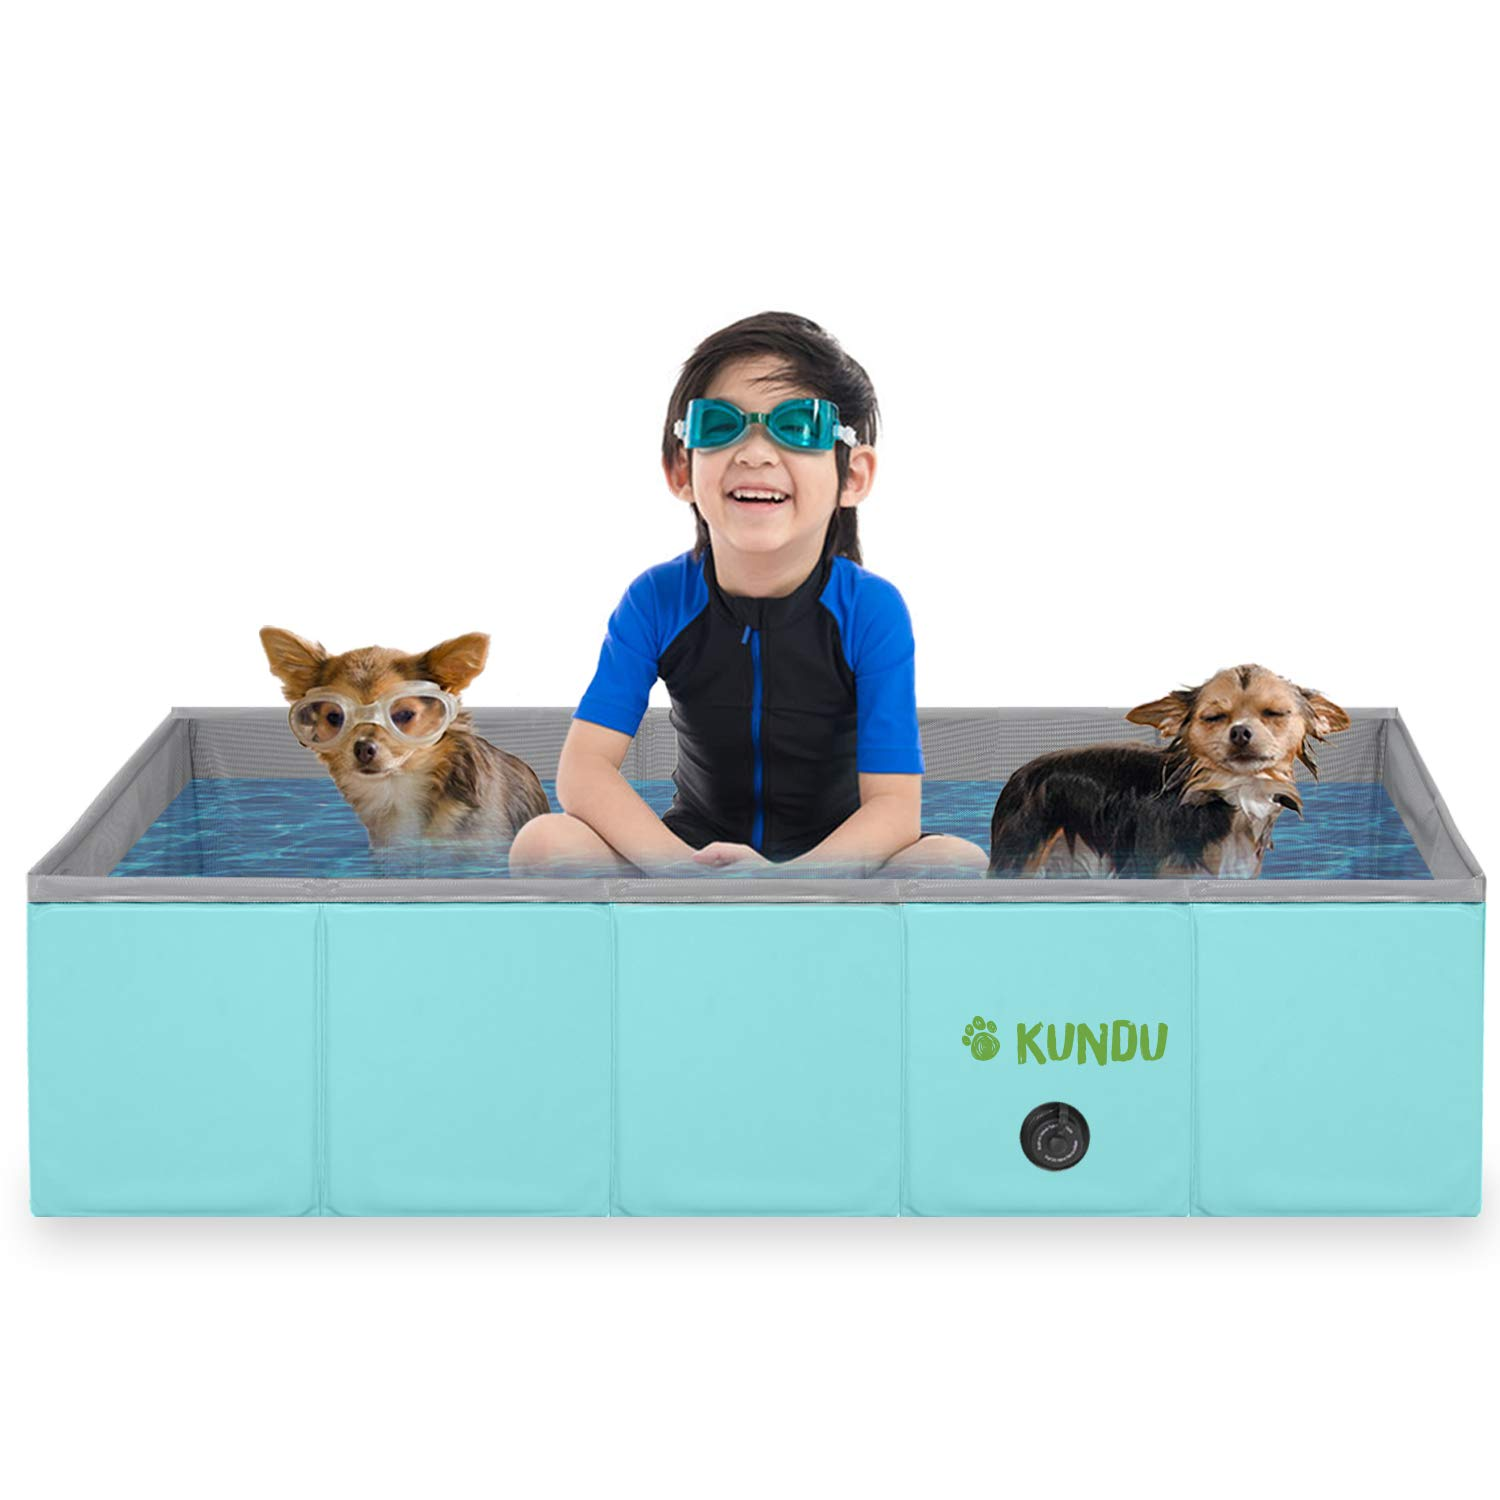 Kundu Rectangular (37'' x 24'' x 10'') Heavy Duty PVC Pets & Kids Outdoor Pool/Bathing Tub - Portable & Foldable - Medium